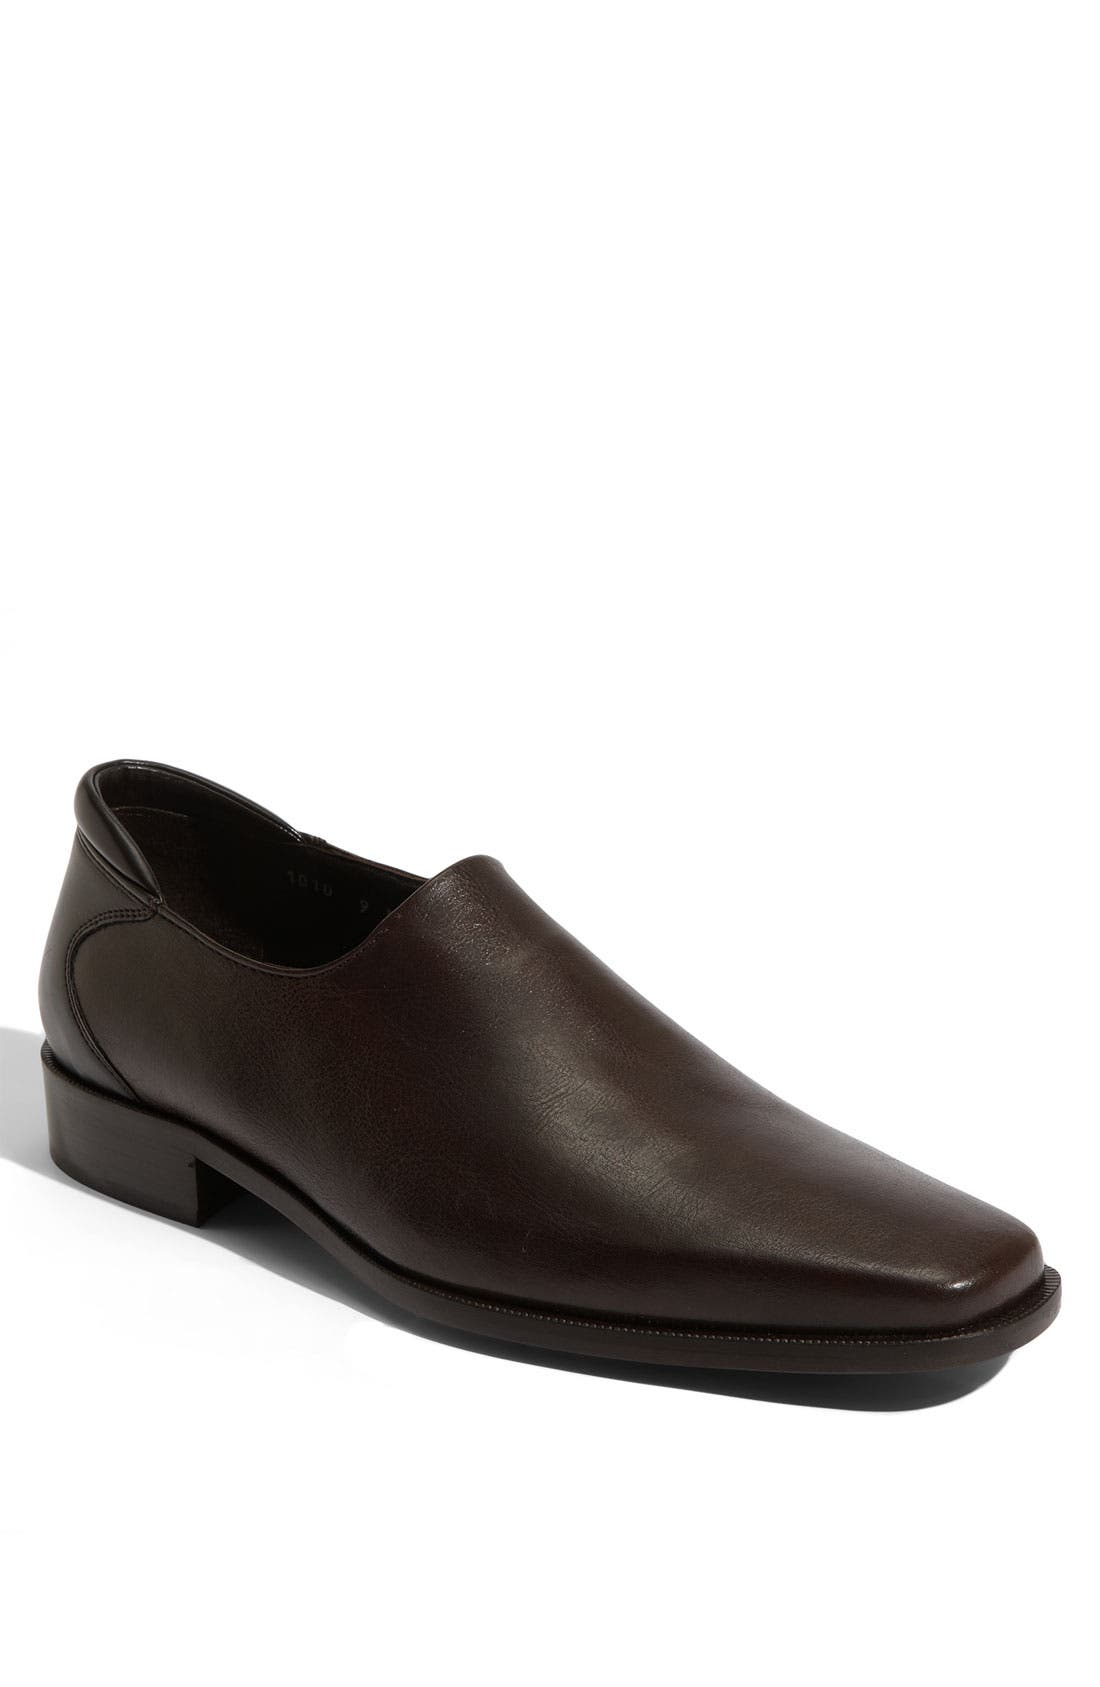 Donald J Pliner 'Rex' Loafer